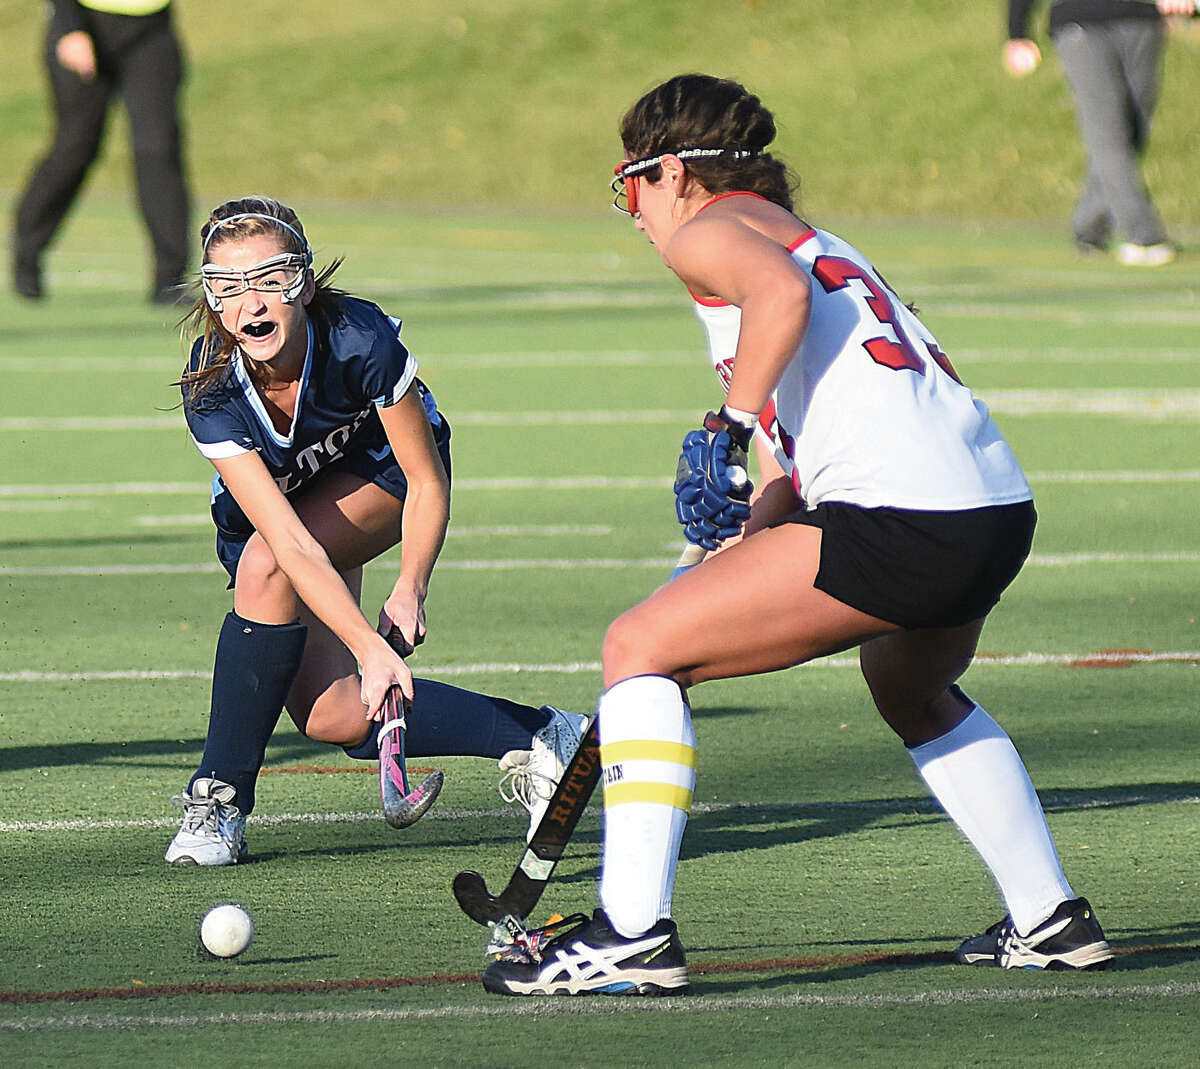 Hour photo/John Nash Wilton's Maddie Duffy, left, sends a pass by Cheshire defender Nicole Salamone during Saturday's CIACClass l championship game against Cheshire at Cottone Field in Wethersfield. Wilton won the game, 1-0, in overtime to give the Warriors their fourth state title in five years.